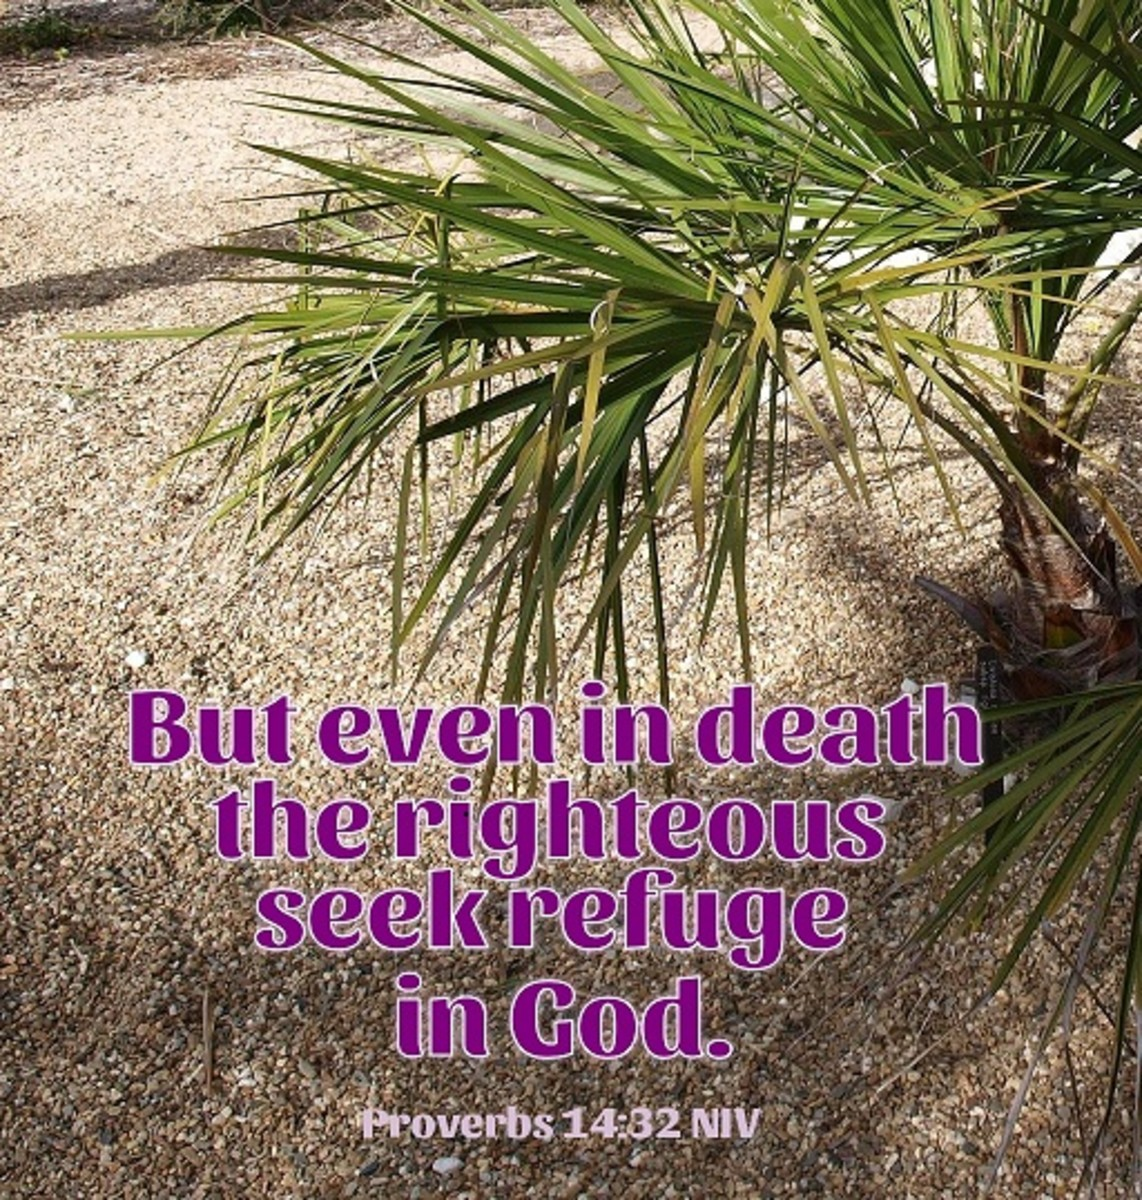 But even in death the righteous seek refuge in God.